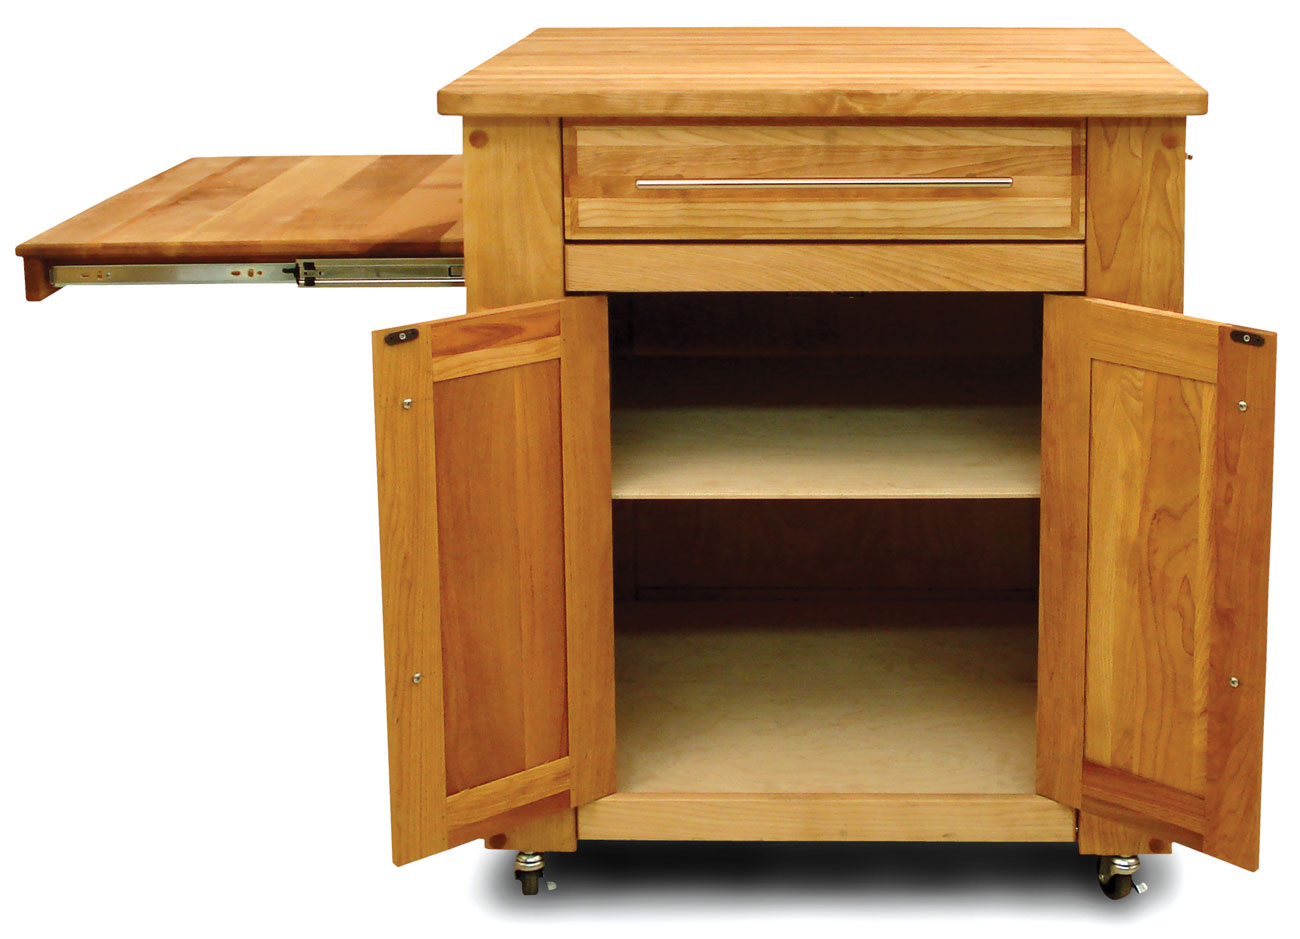 photo gallery of the catskill craftsmen kitchen islands u2013 affordable durable attractive